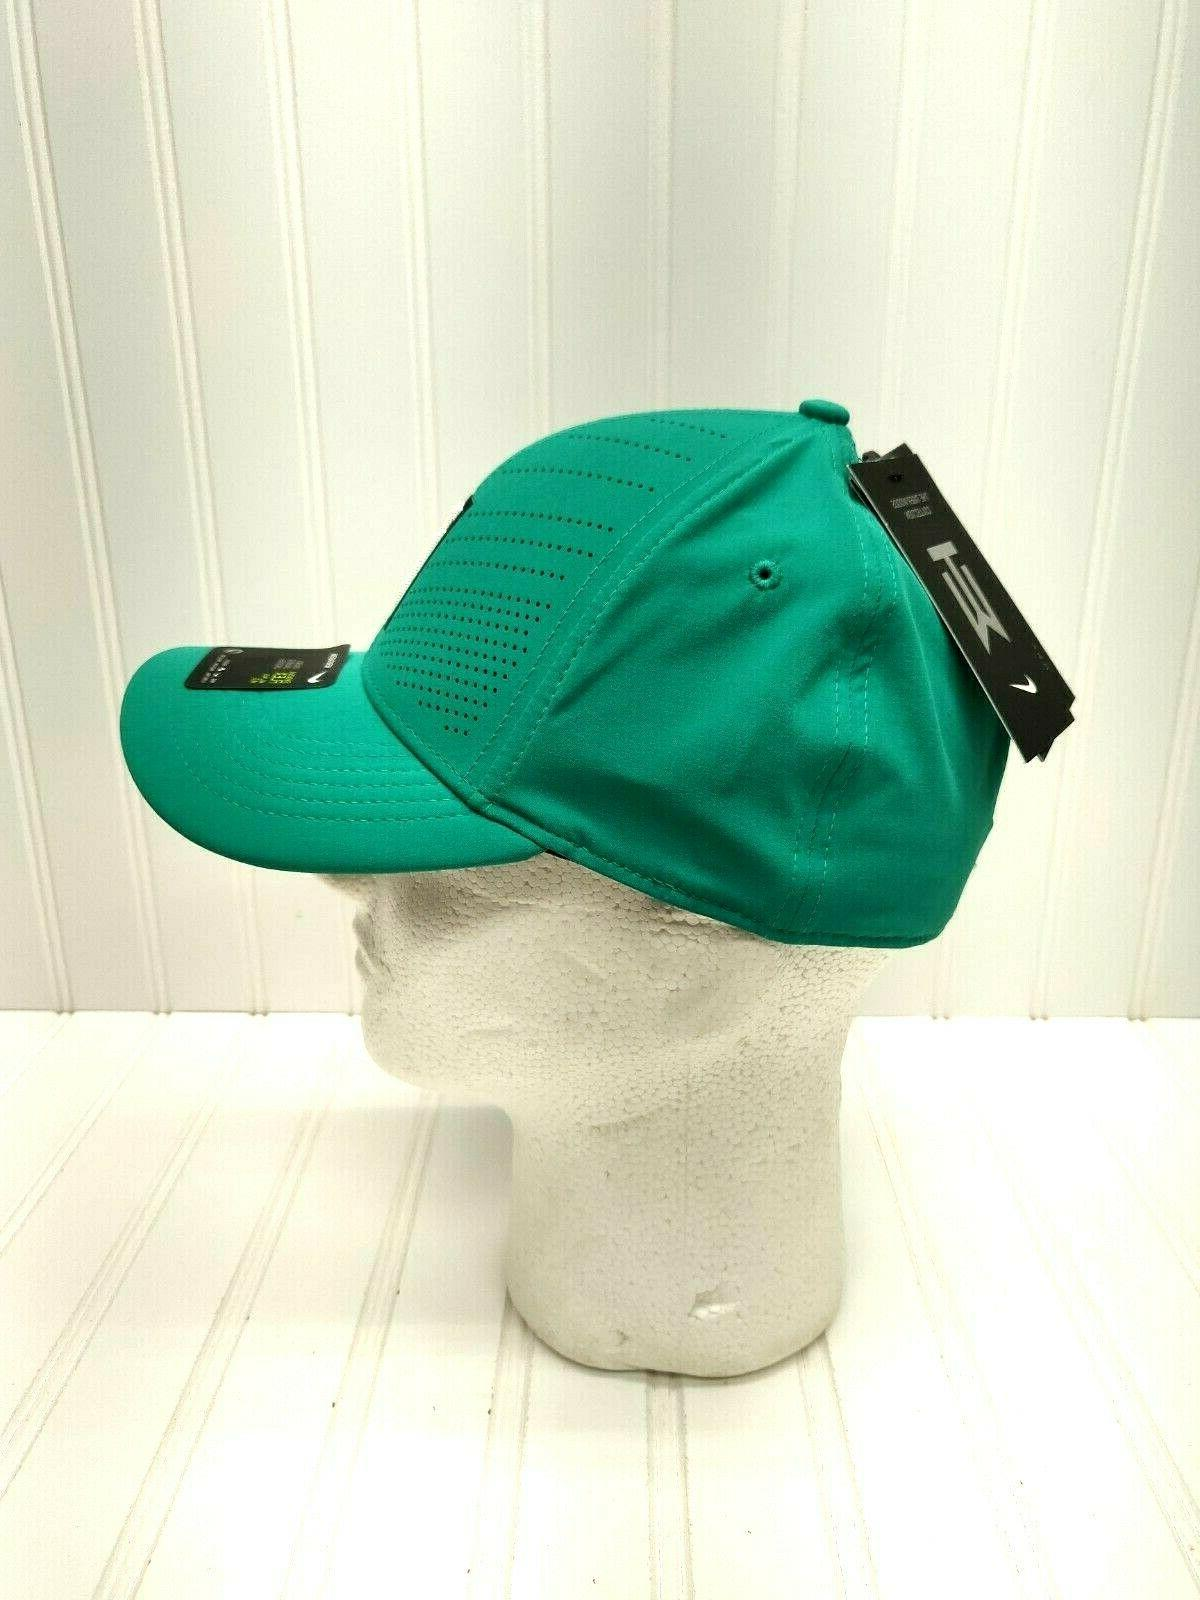 NWT Aerobill Tiger Woods Flex Cap Green